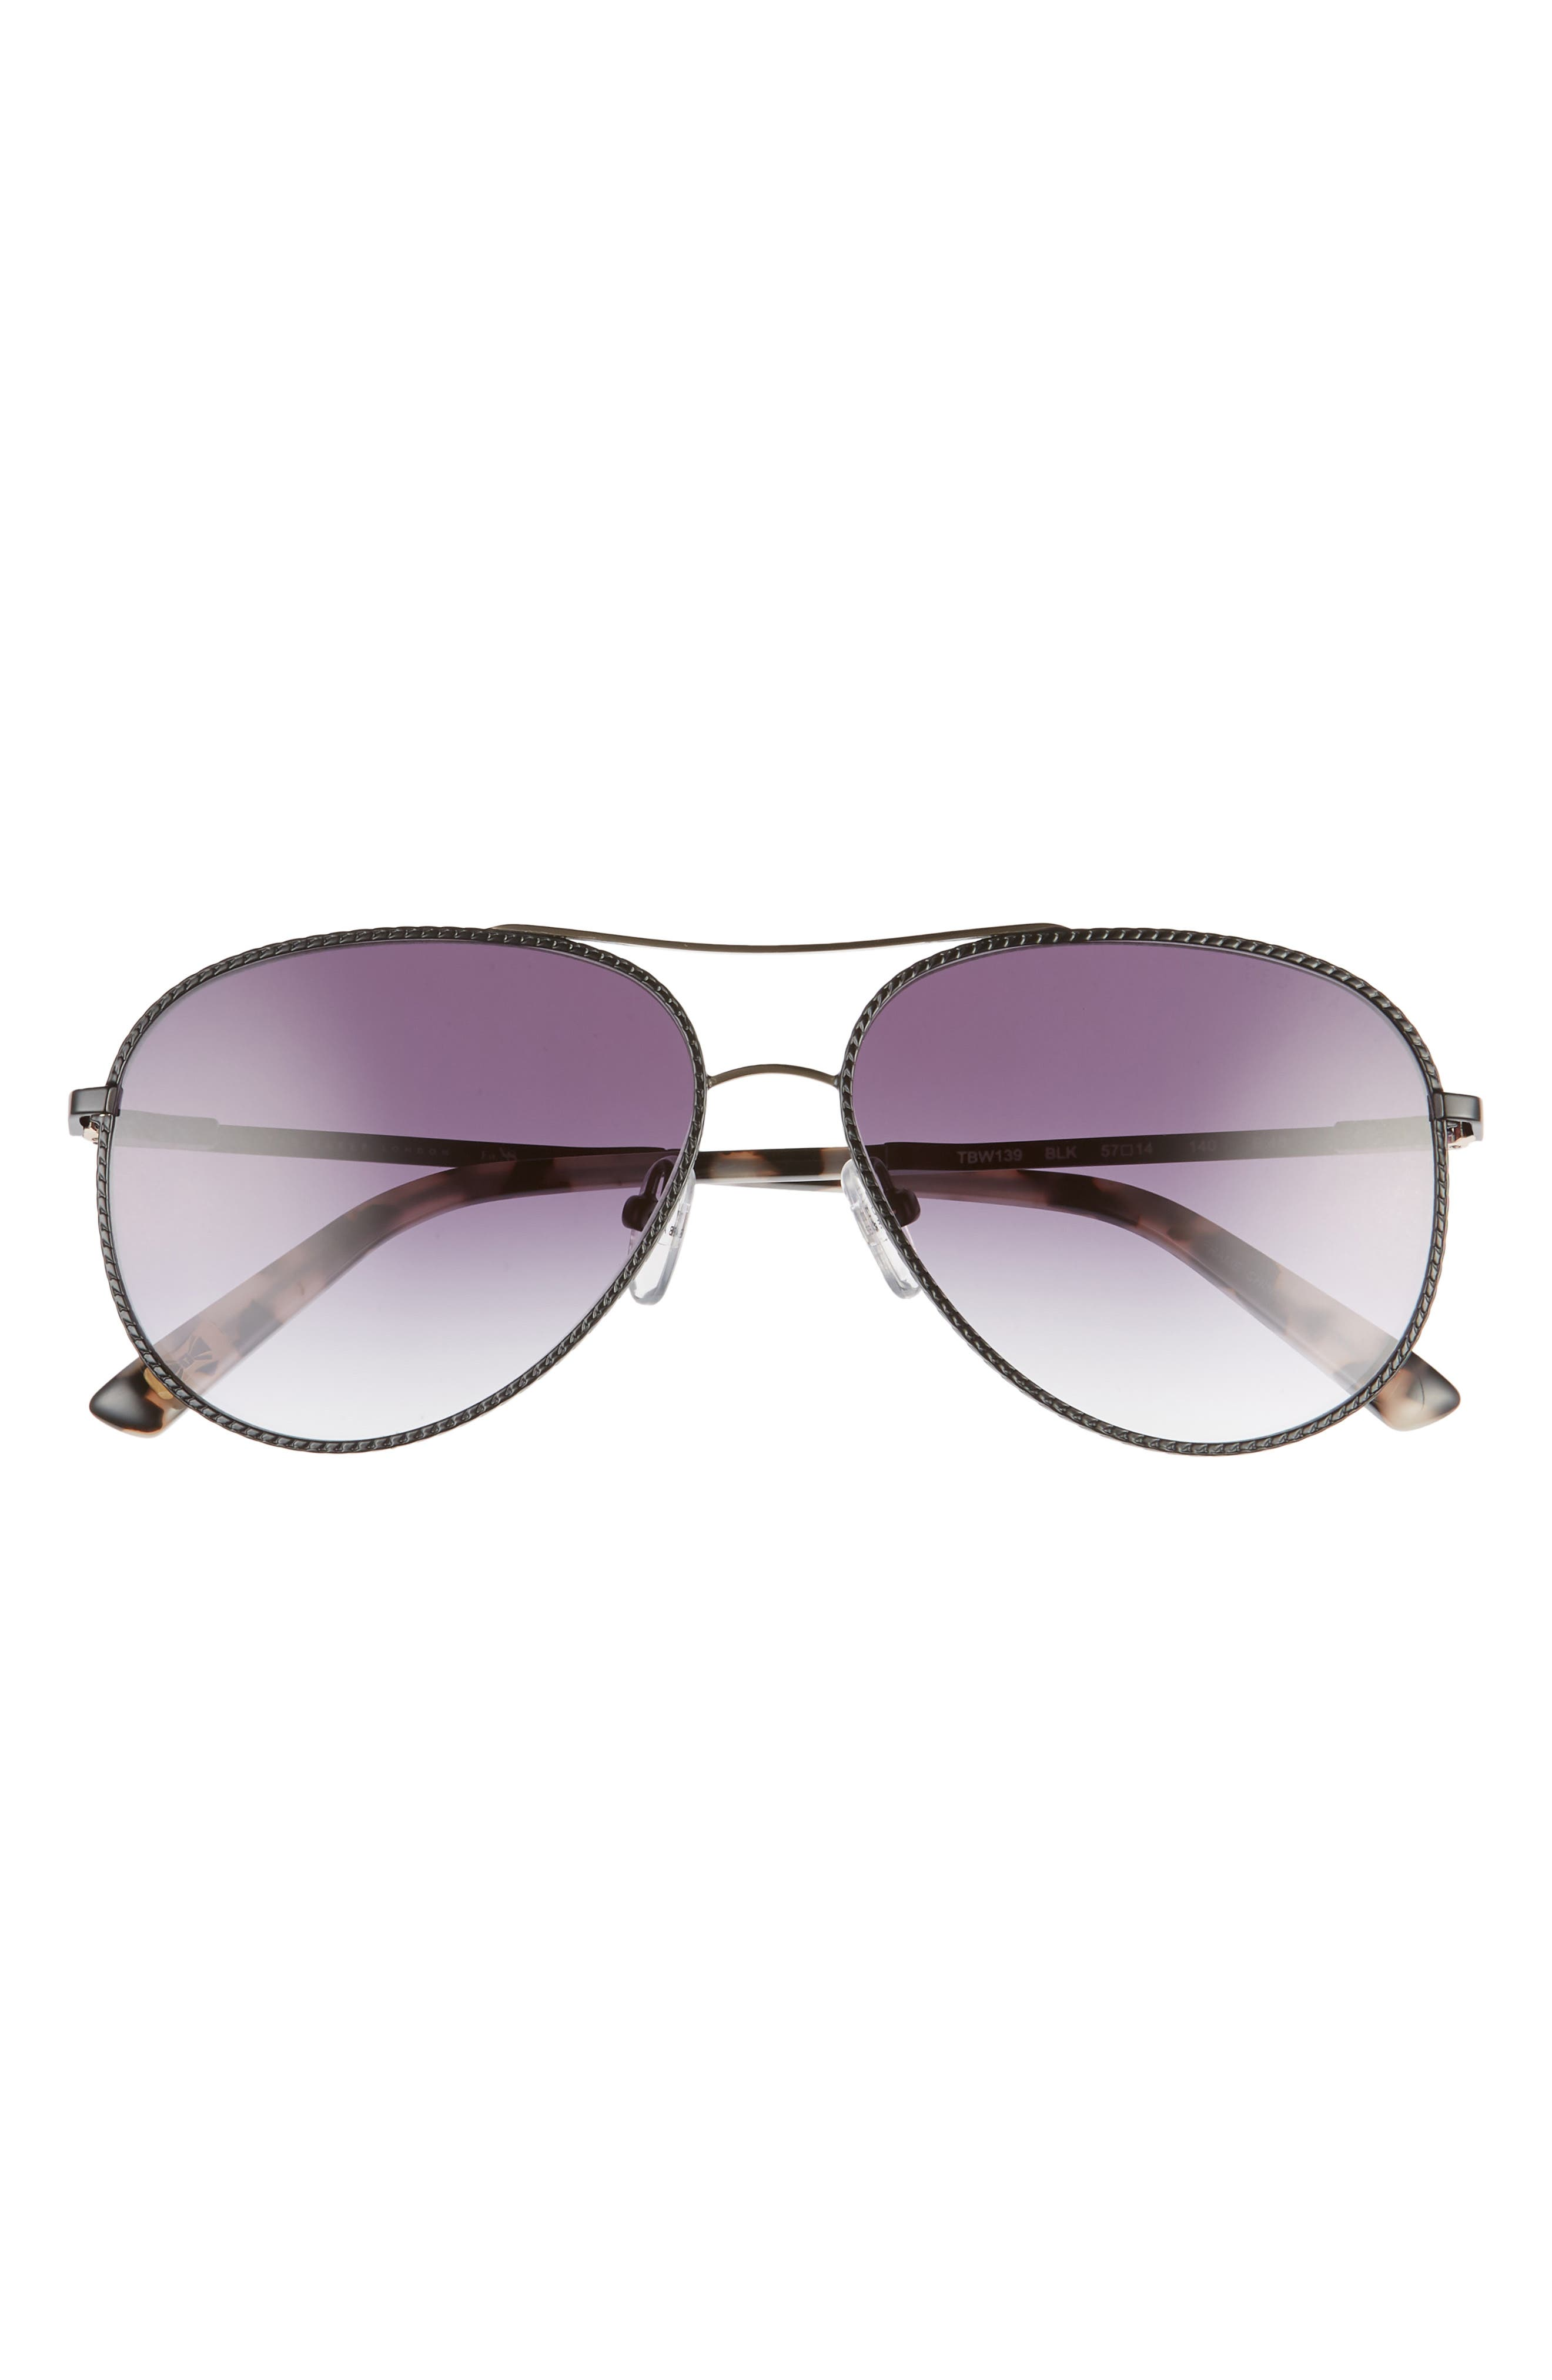 A textured frame is fitted with gradient CR-39 lenses on sunglasses featuring an always-chic aviator silhouette. Style Name: Ted Baker London 57mm Aviator Sunglasses. Style Number: 5987434. Available in stores.